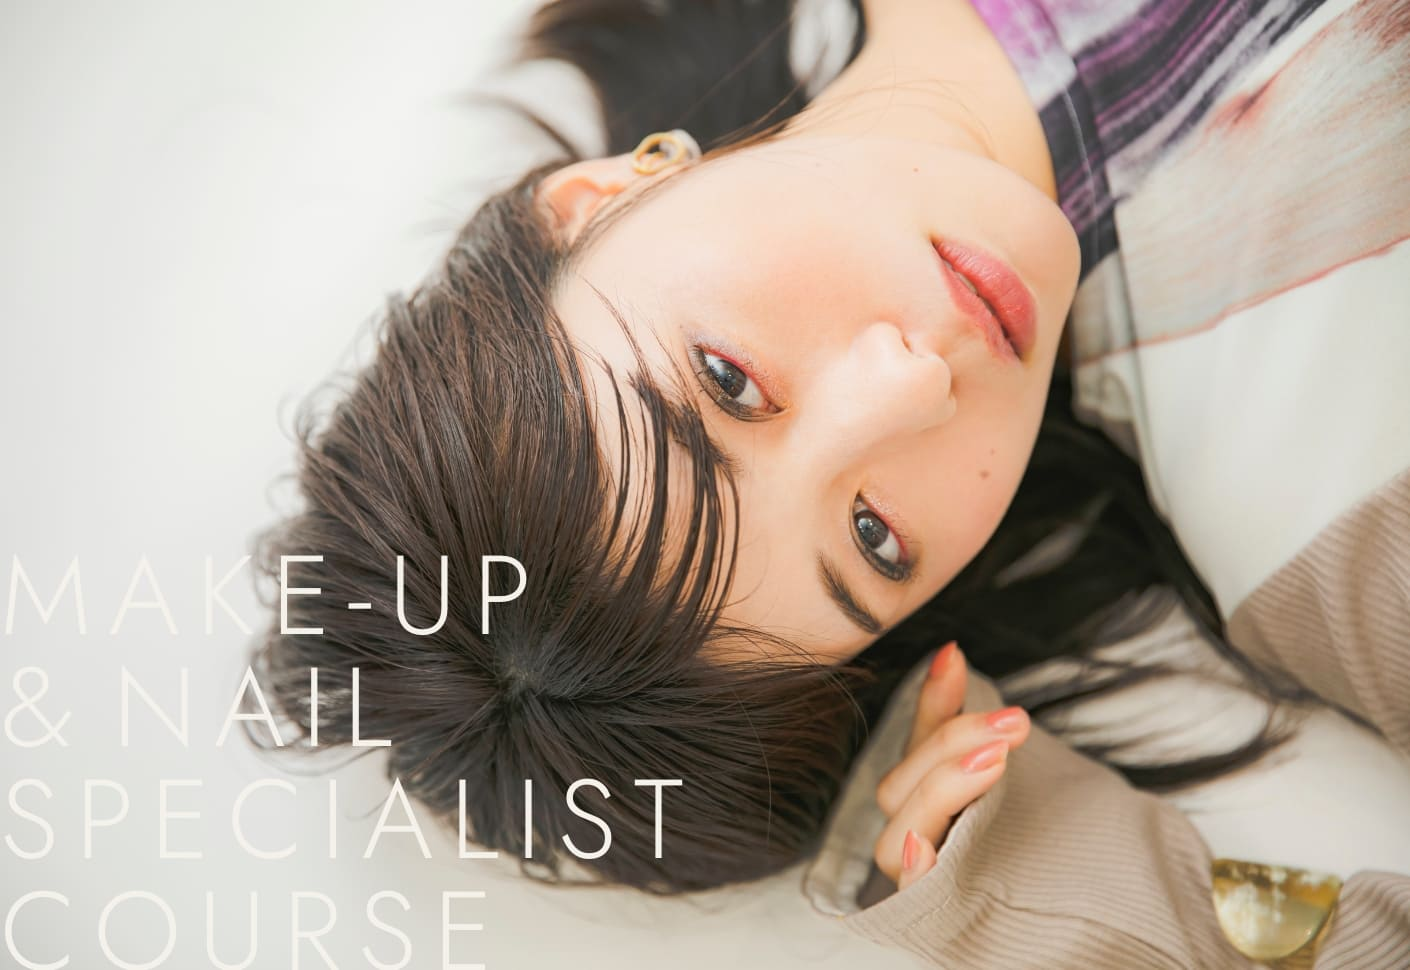 Make-up & Nail specialist course